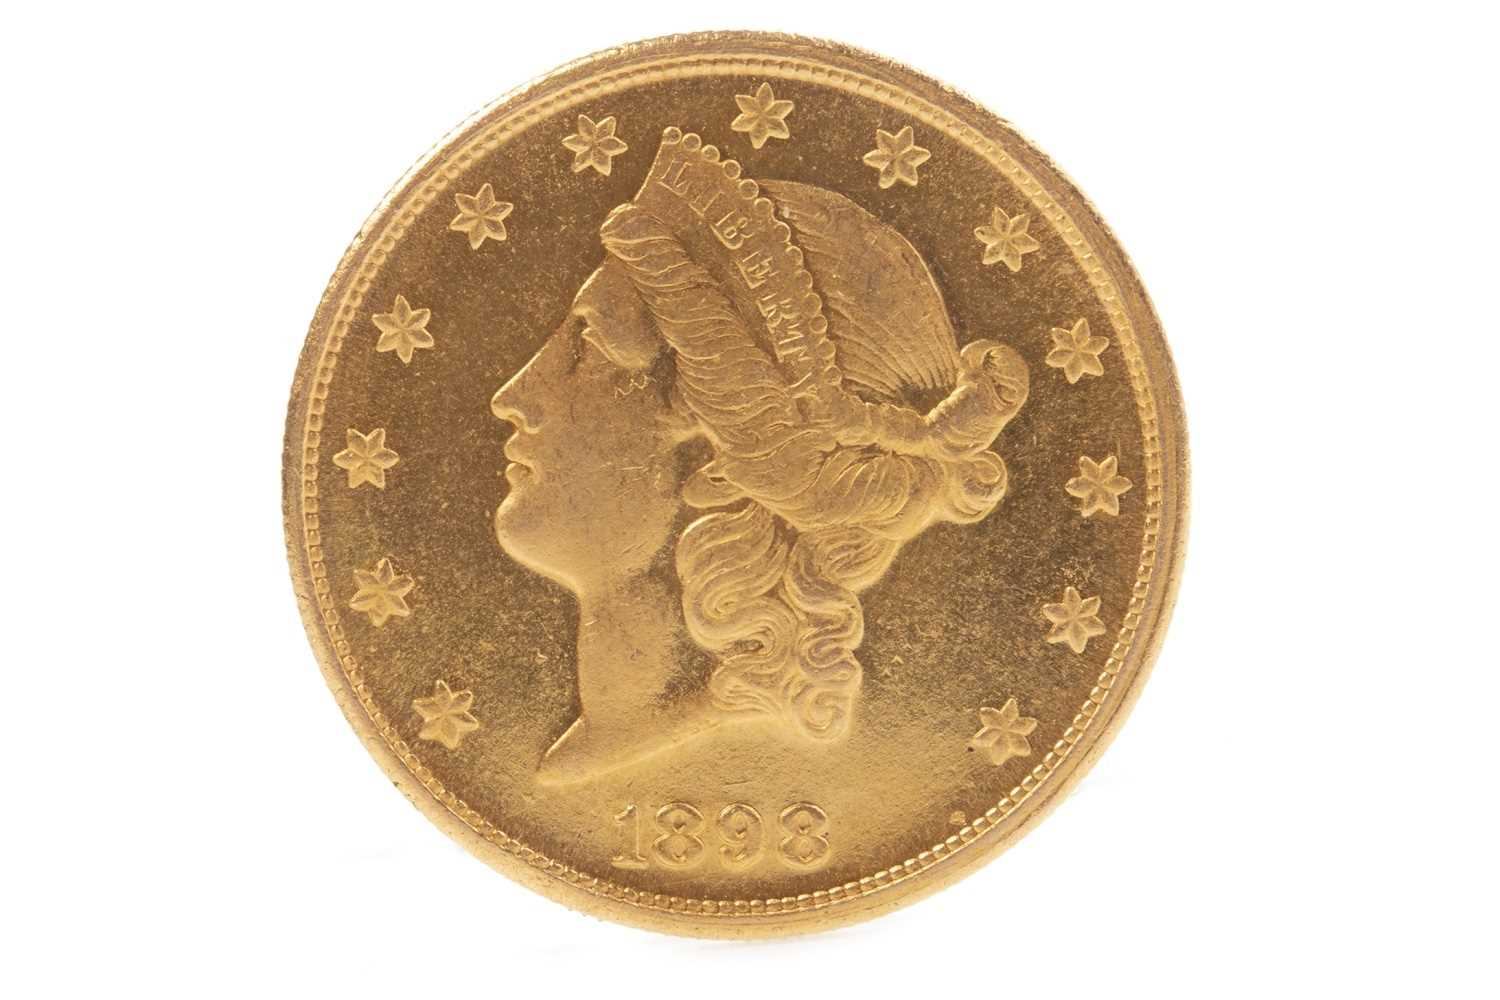 Lot 544-A USA GOLD $20 COIN DATED 1898